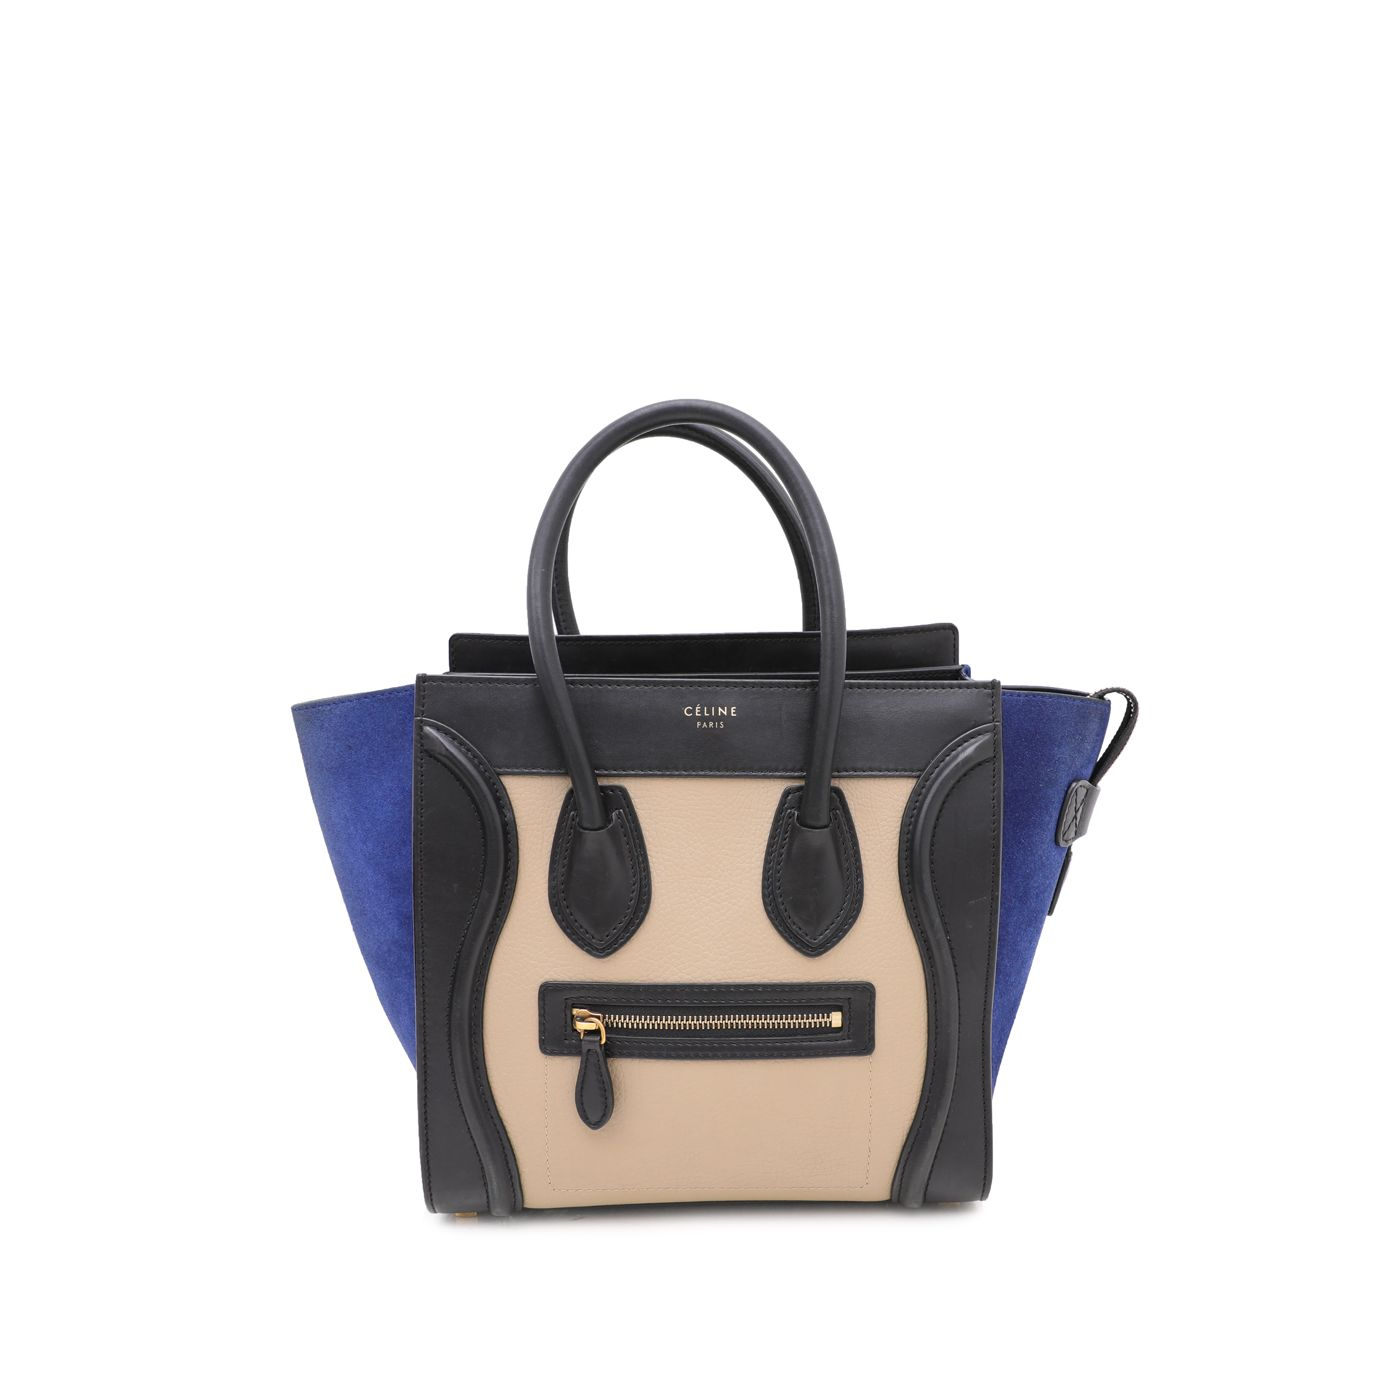 Celine Tricolor Suede/Leather Micro Luggage Bag